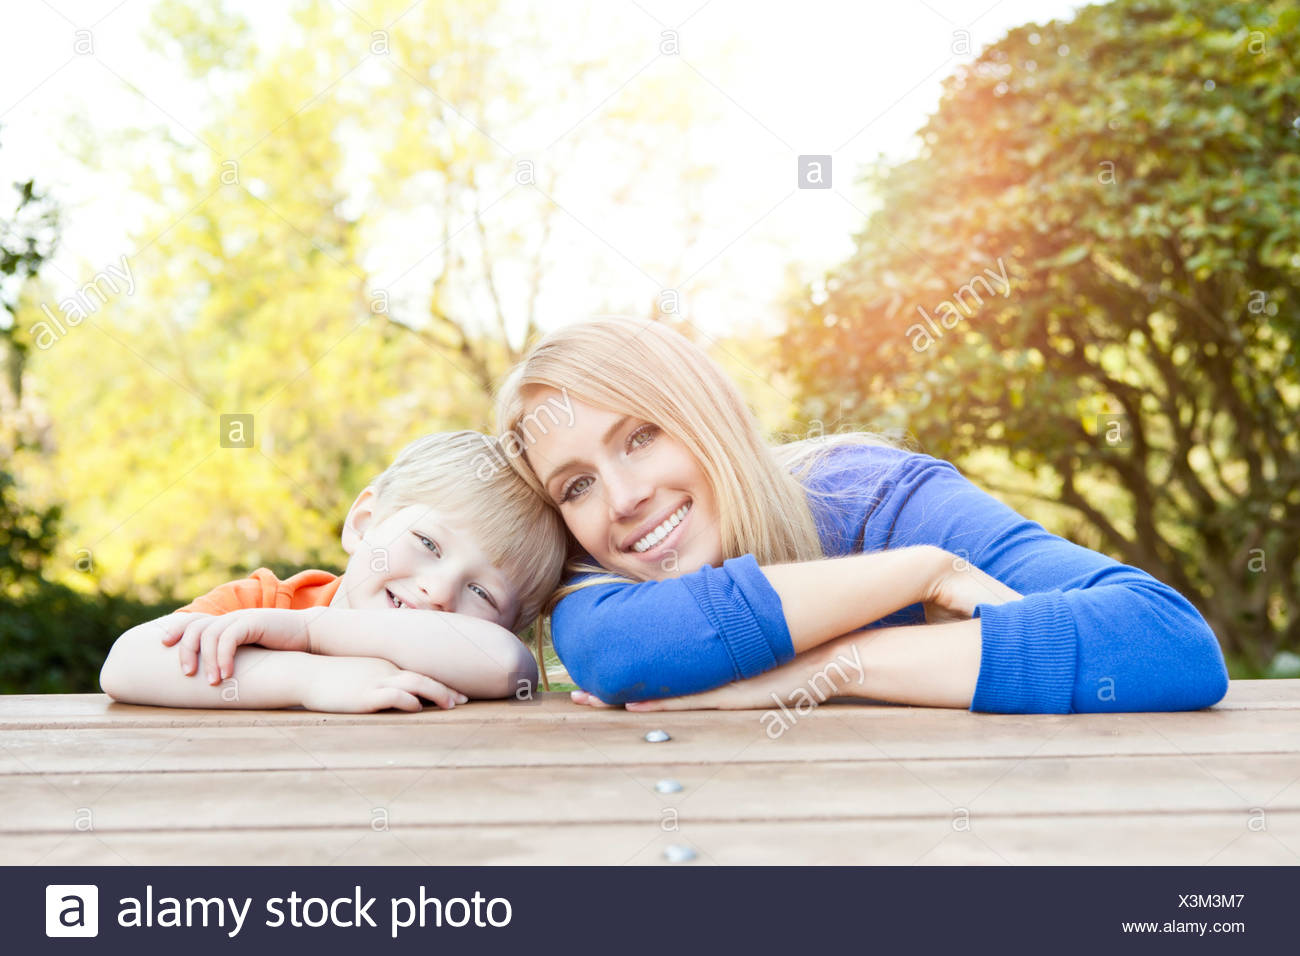 USA, Washington State, Seattle, portrait of mother and son leaning at picnic table - Stock Image